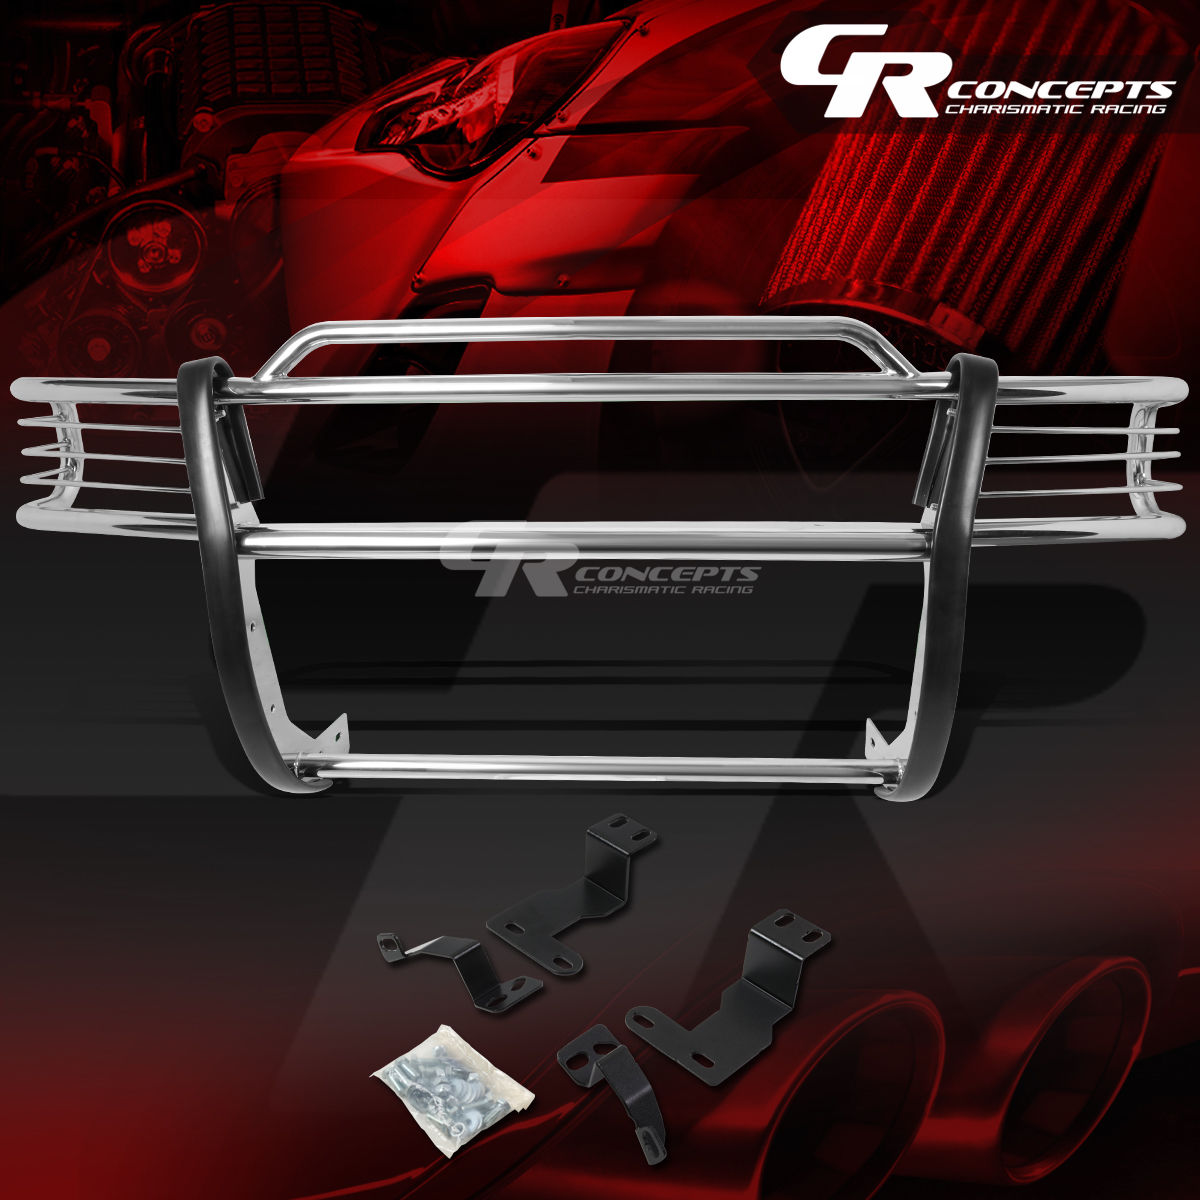 グリル クロムステンレスブラシグリルガード炎97-04 DAKOTA / 98-03 DURANGO CHROME STAINLESS STEEL BRUSH GRILL GUARD FLAME FOR 97-04 DAKOTA/98-03 DURANGO